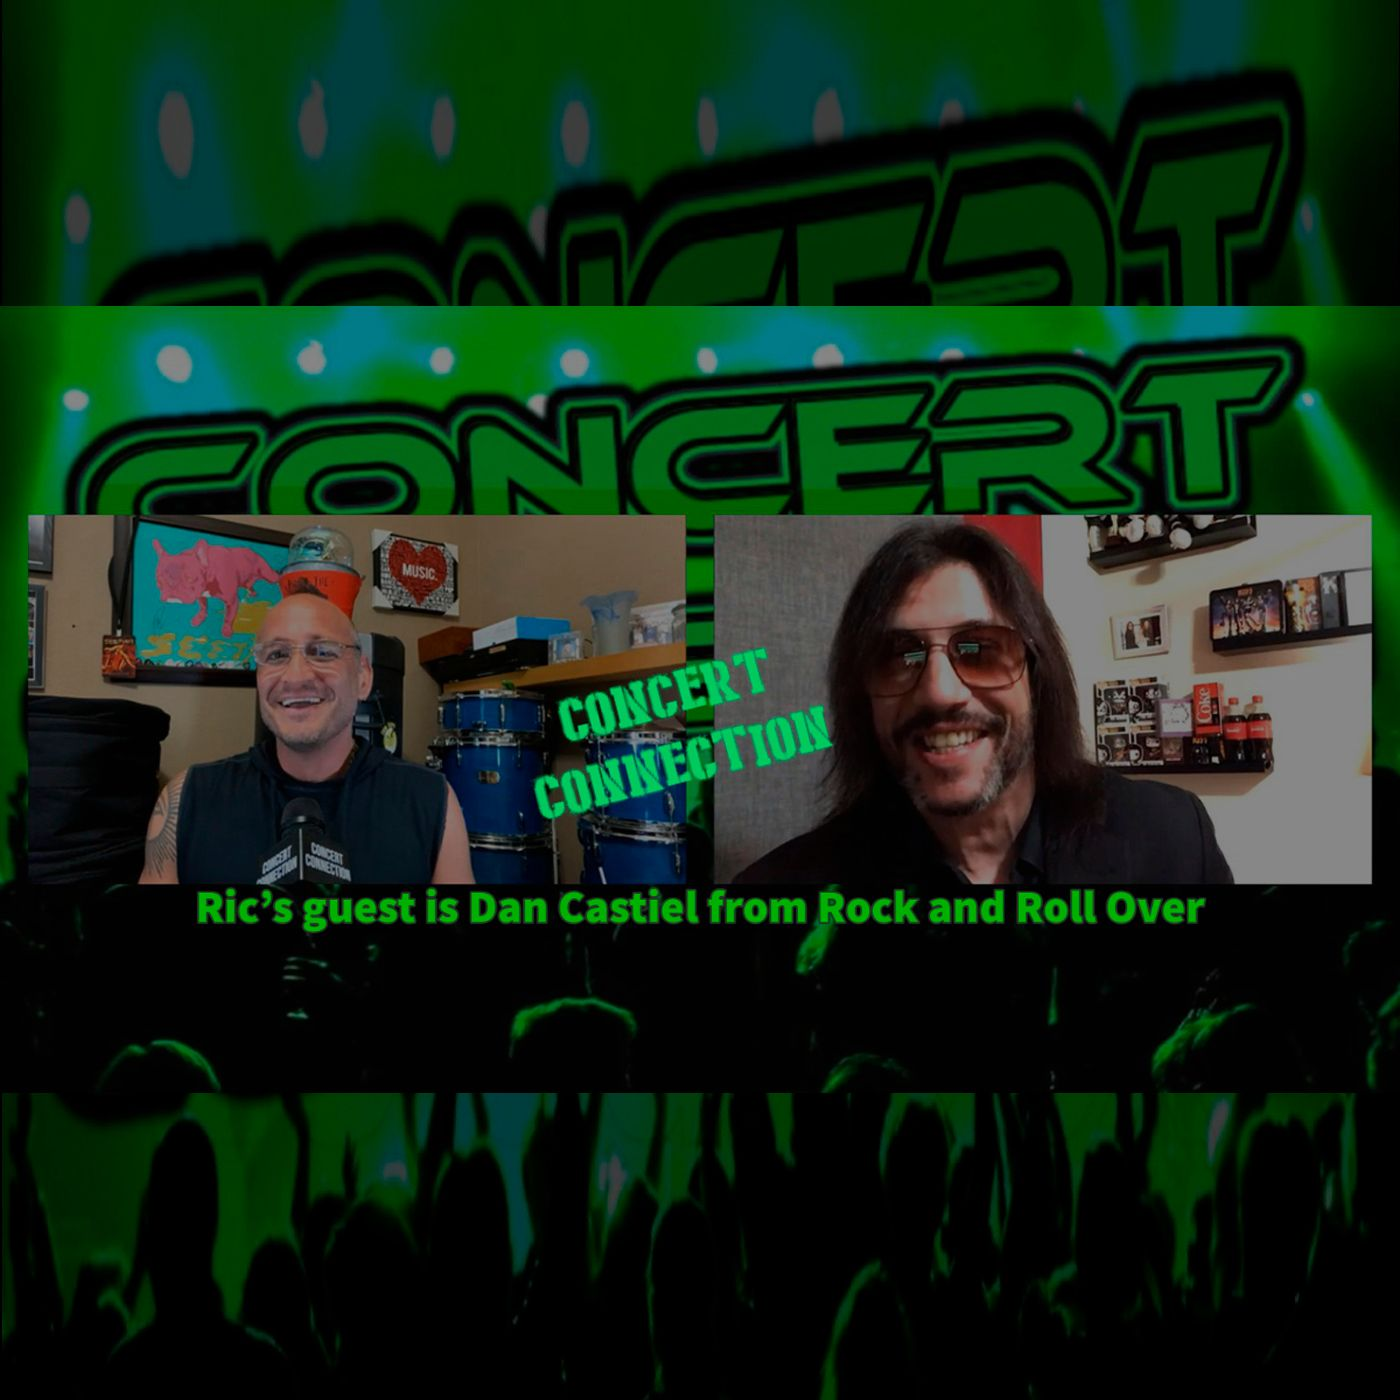 TCC Mar 31 2021 Ric's guest is Dan Castiel from Rock and Roll Over, one of the top 4 KISS tributes in the World according to KISS in 2012